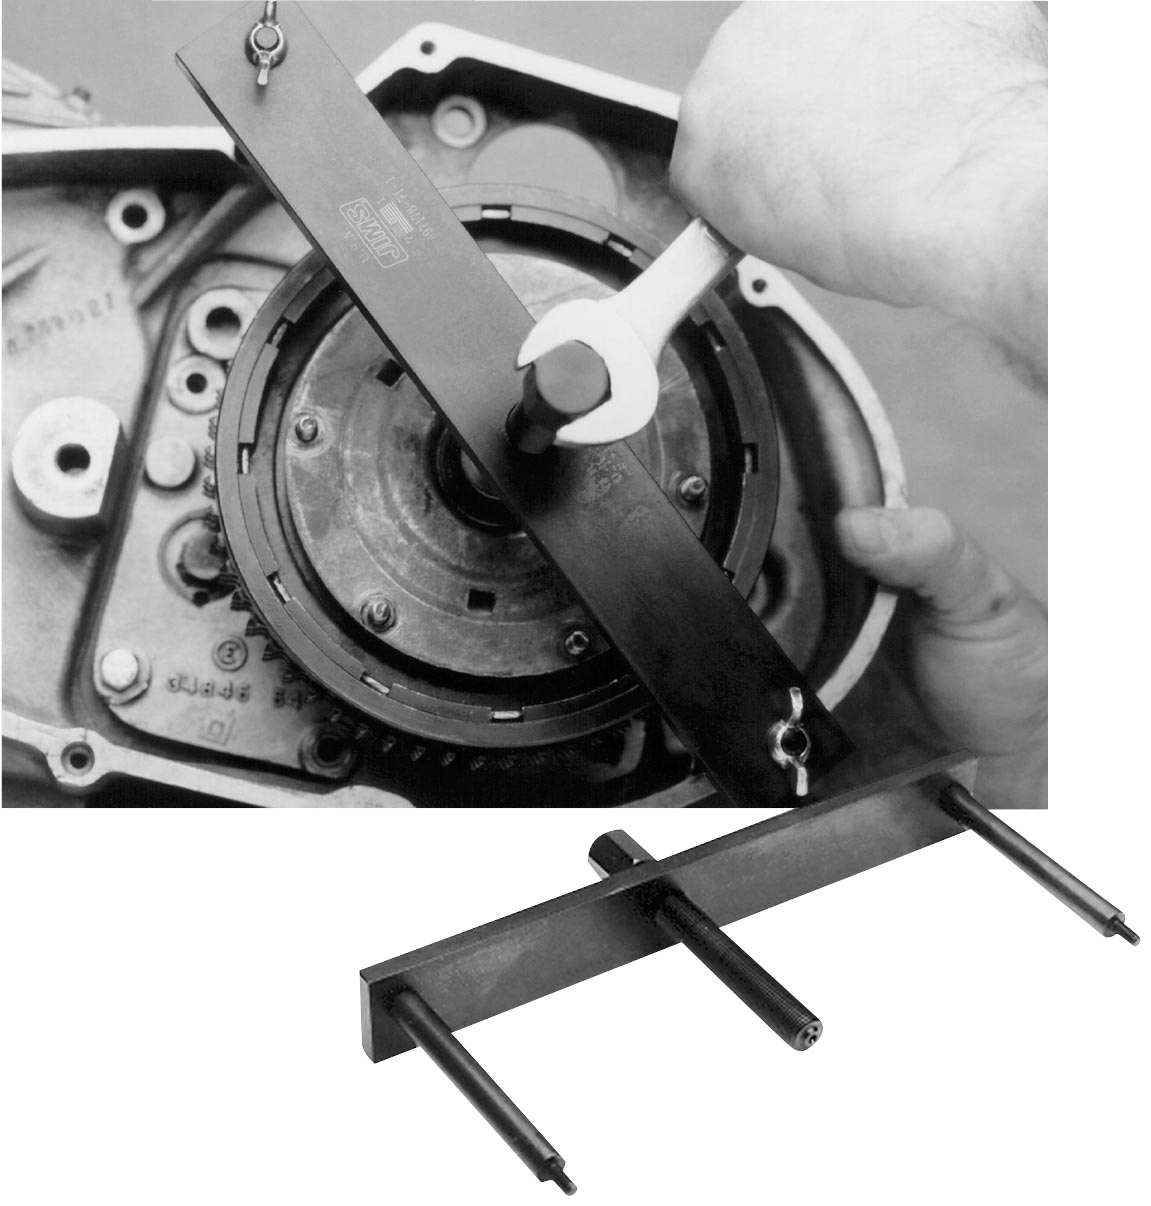 Jims Force Flow: Jims Clutch Spring Compressor Tool